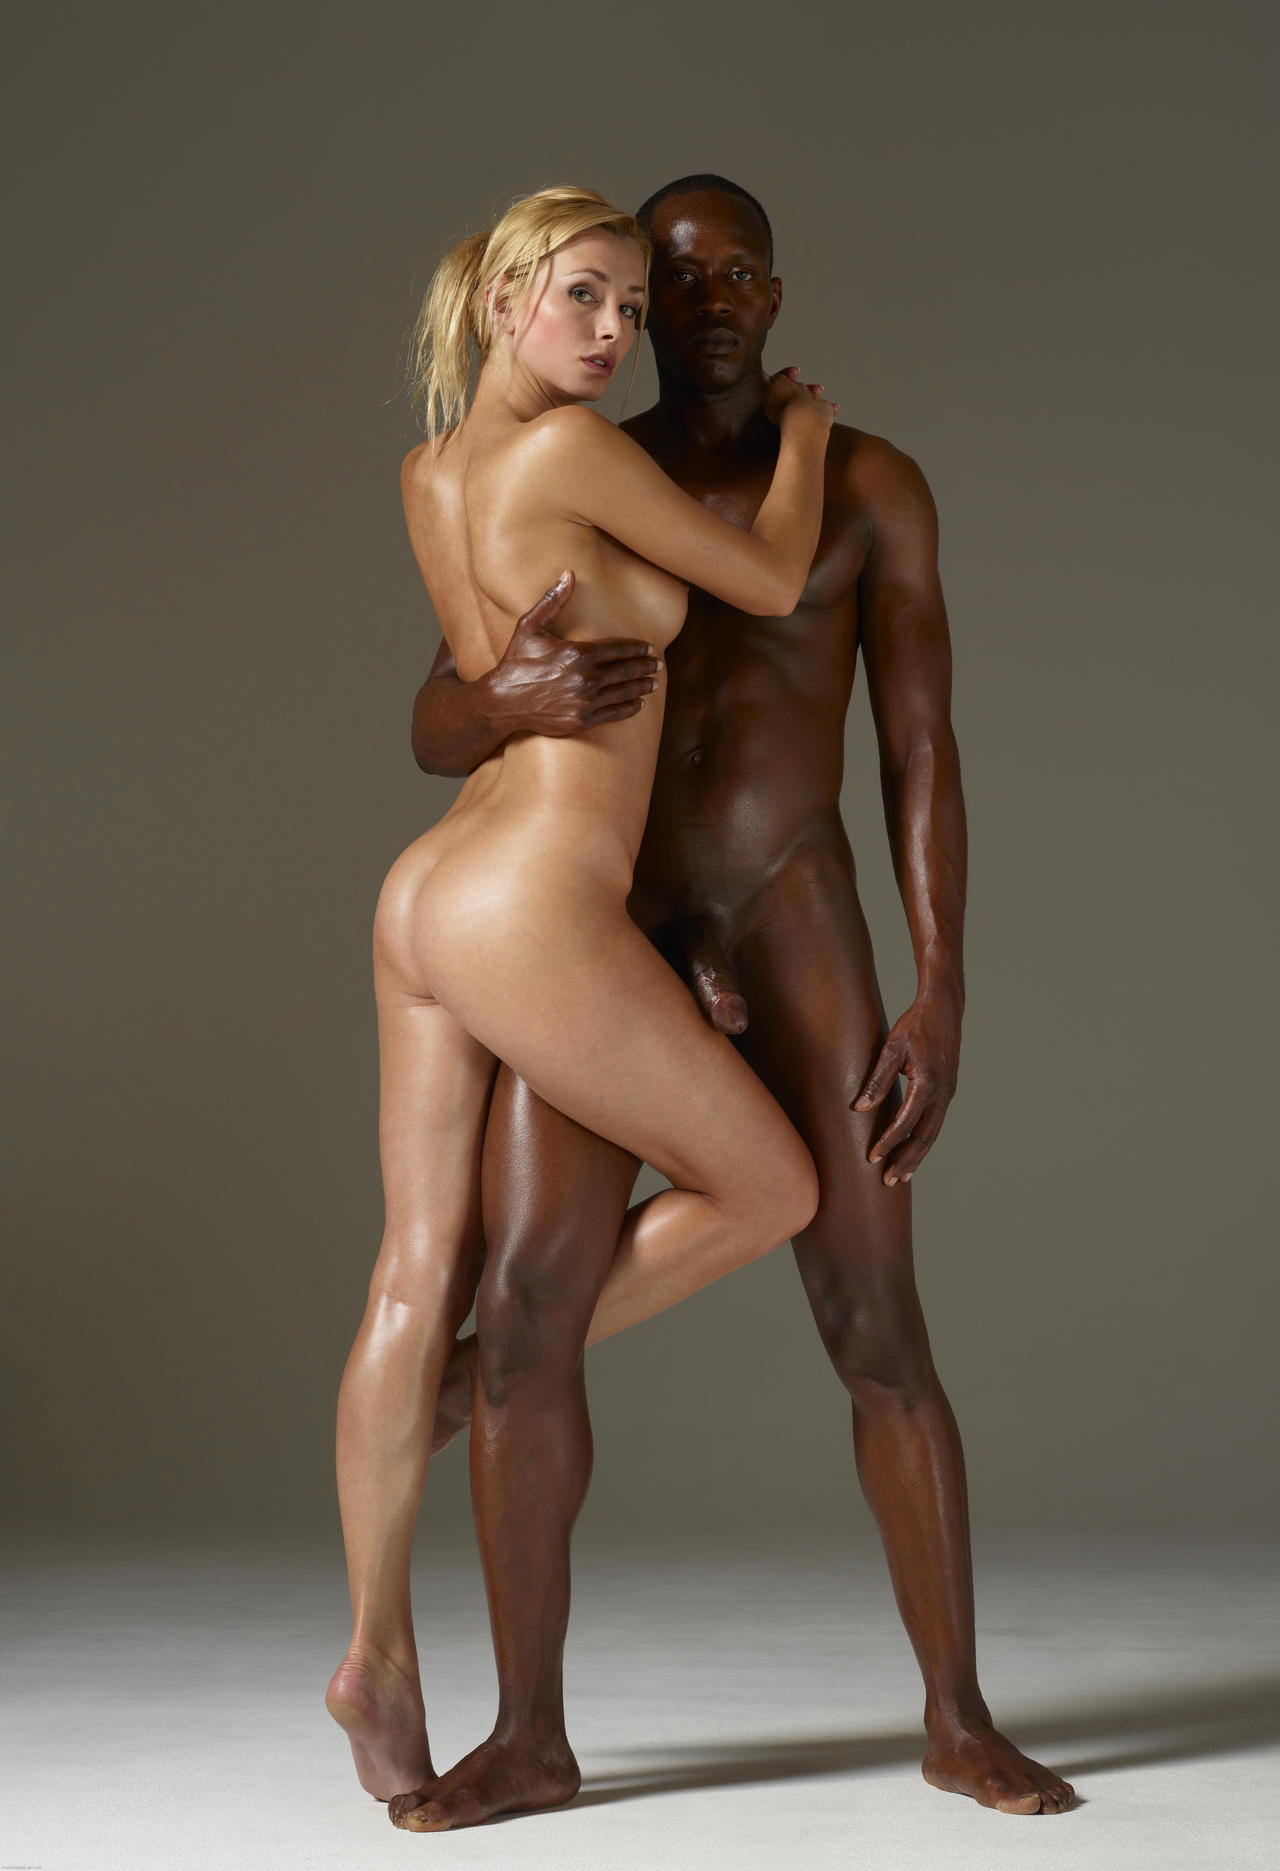 Phrase, matchless))), Naked horny couples in black and white seems